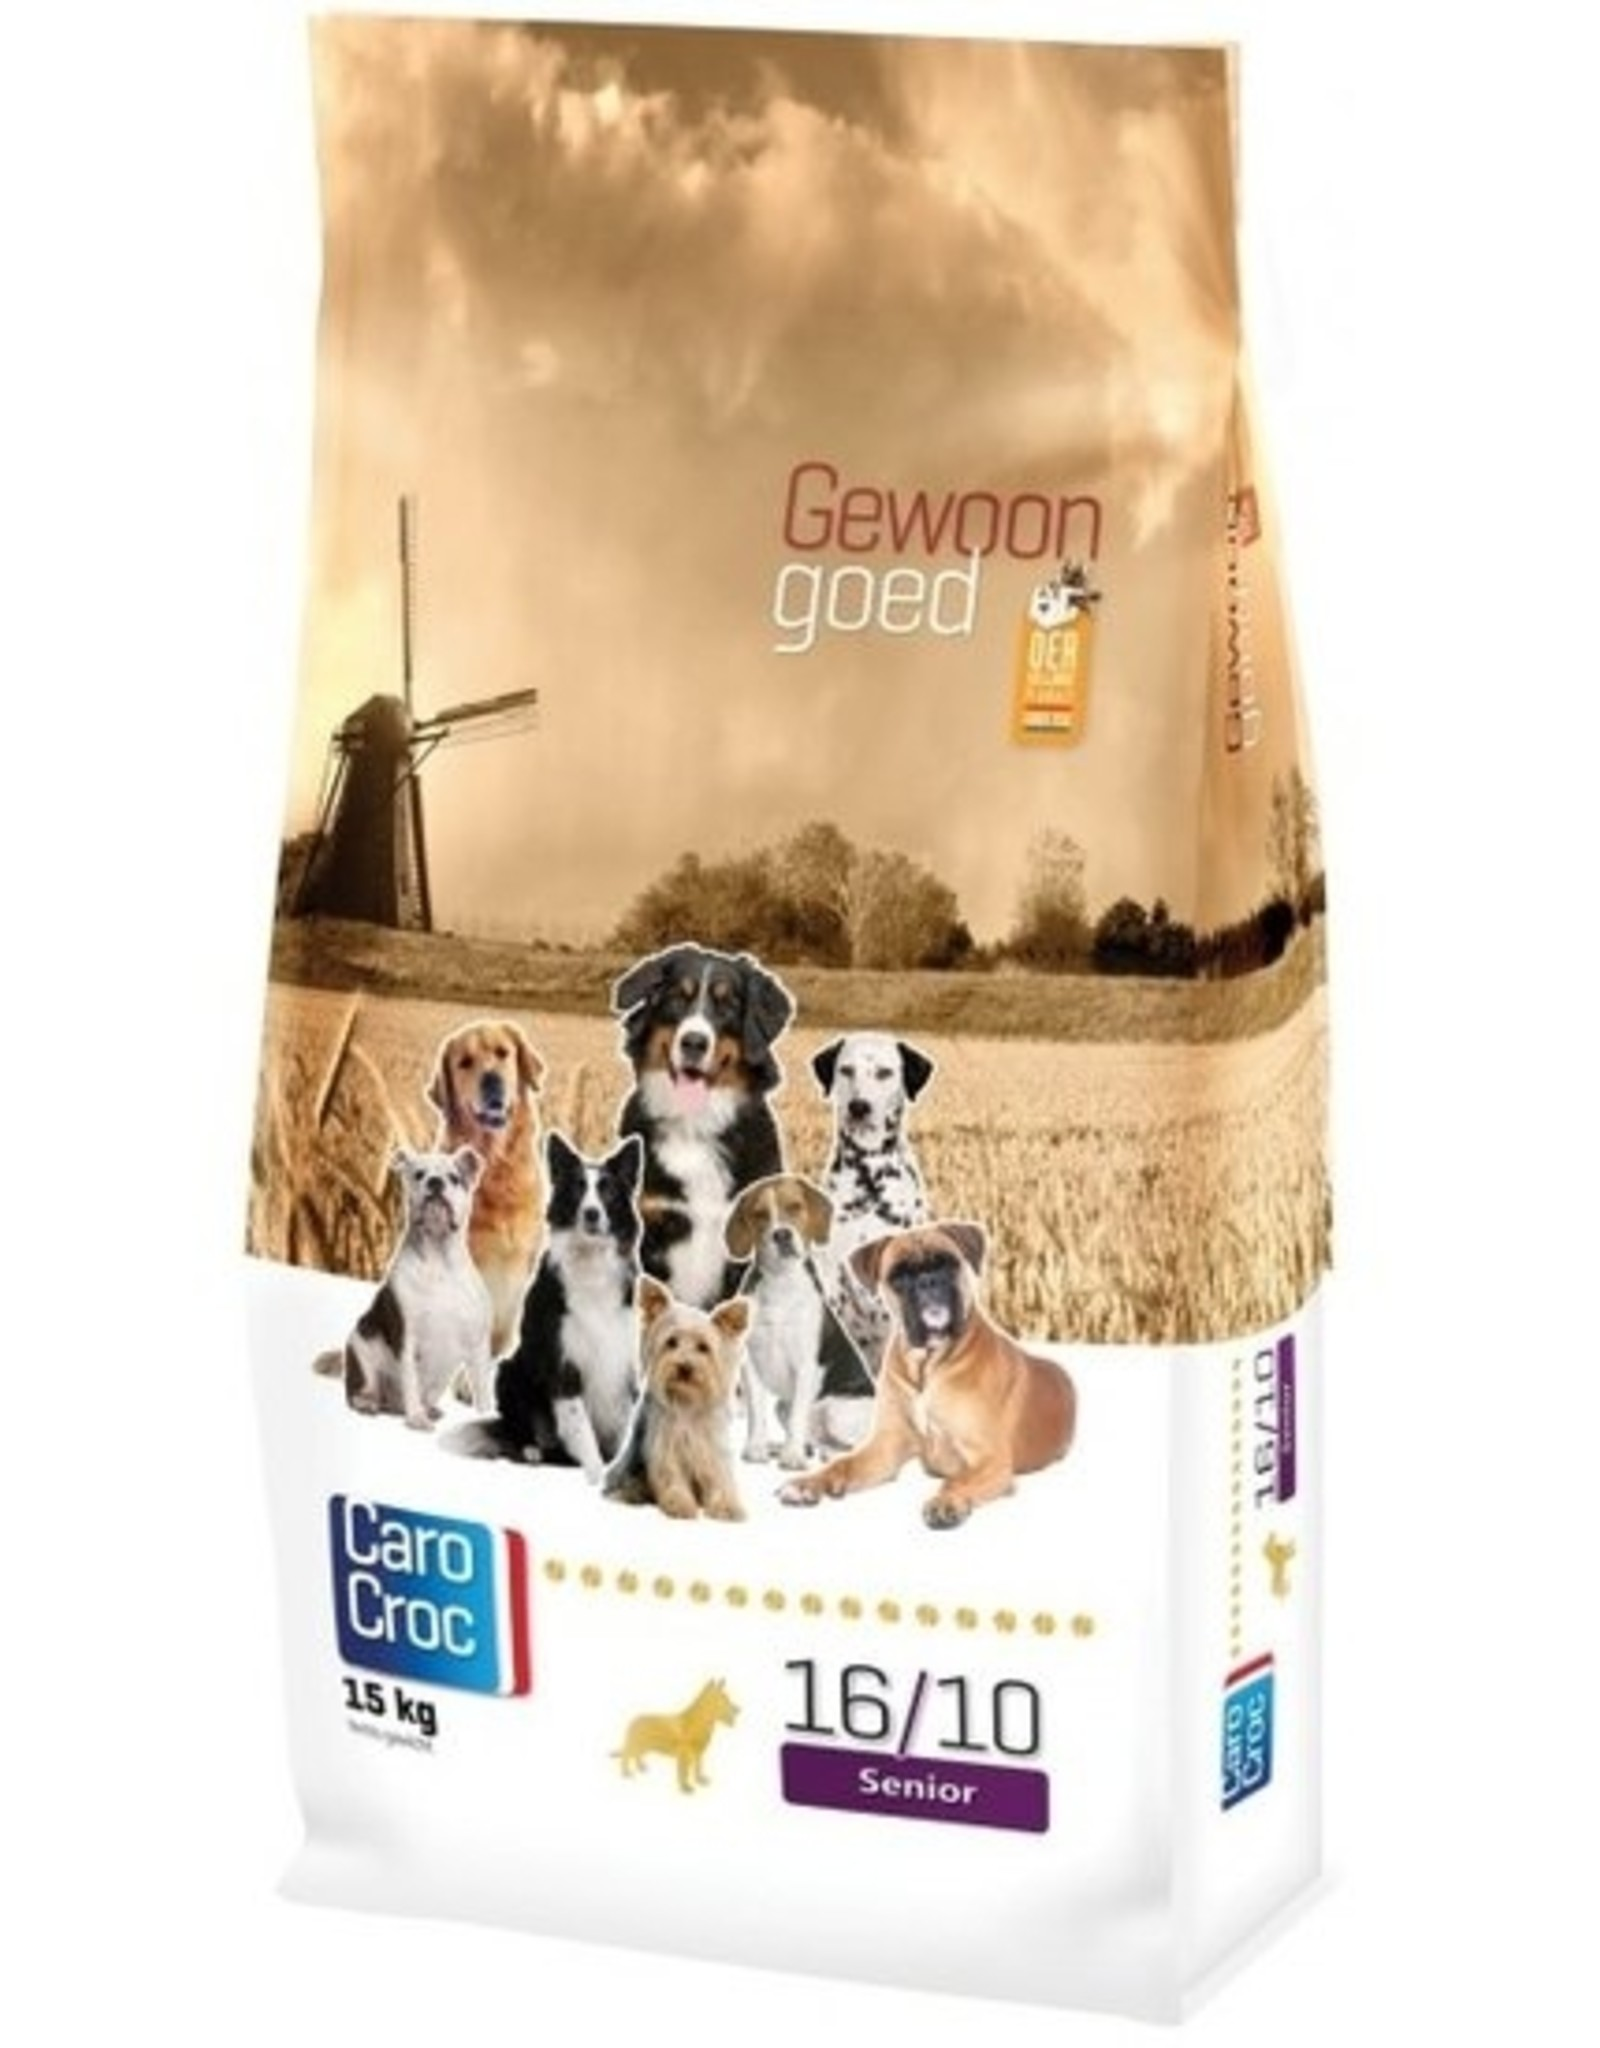 Sanimed Sanimed Carocroc Senior Canine 16/10 Lamb Rice 15kg